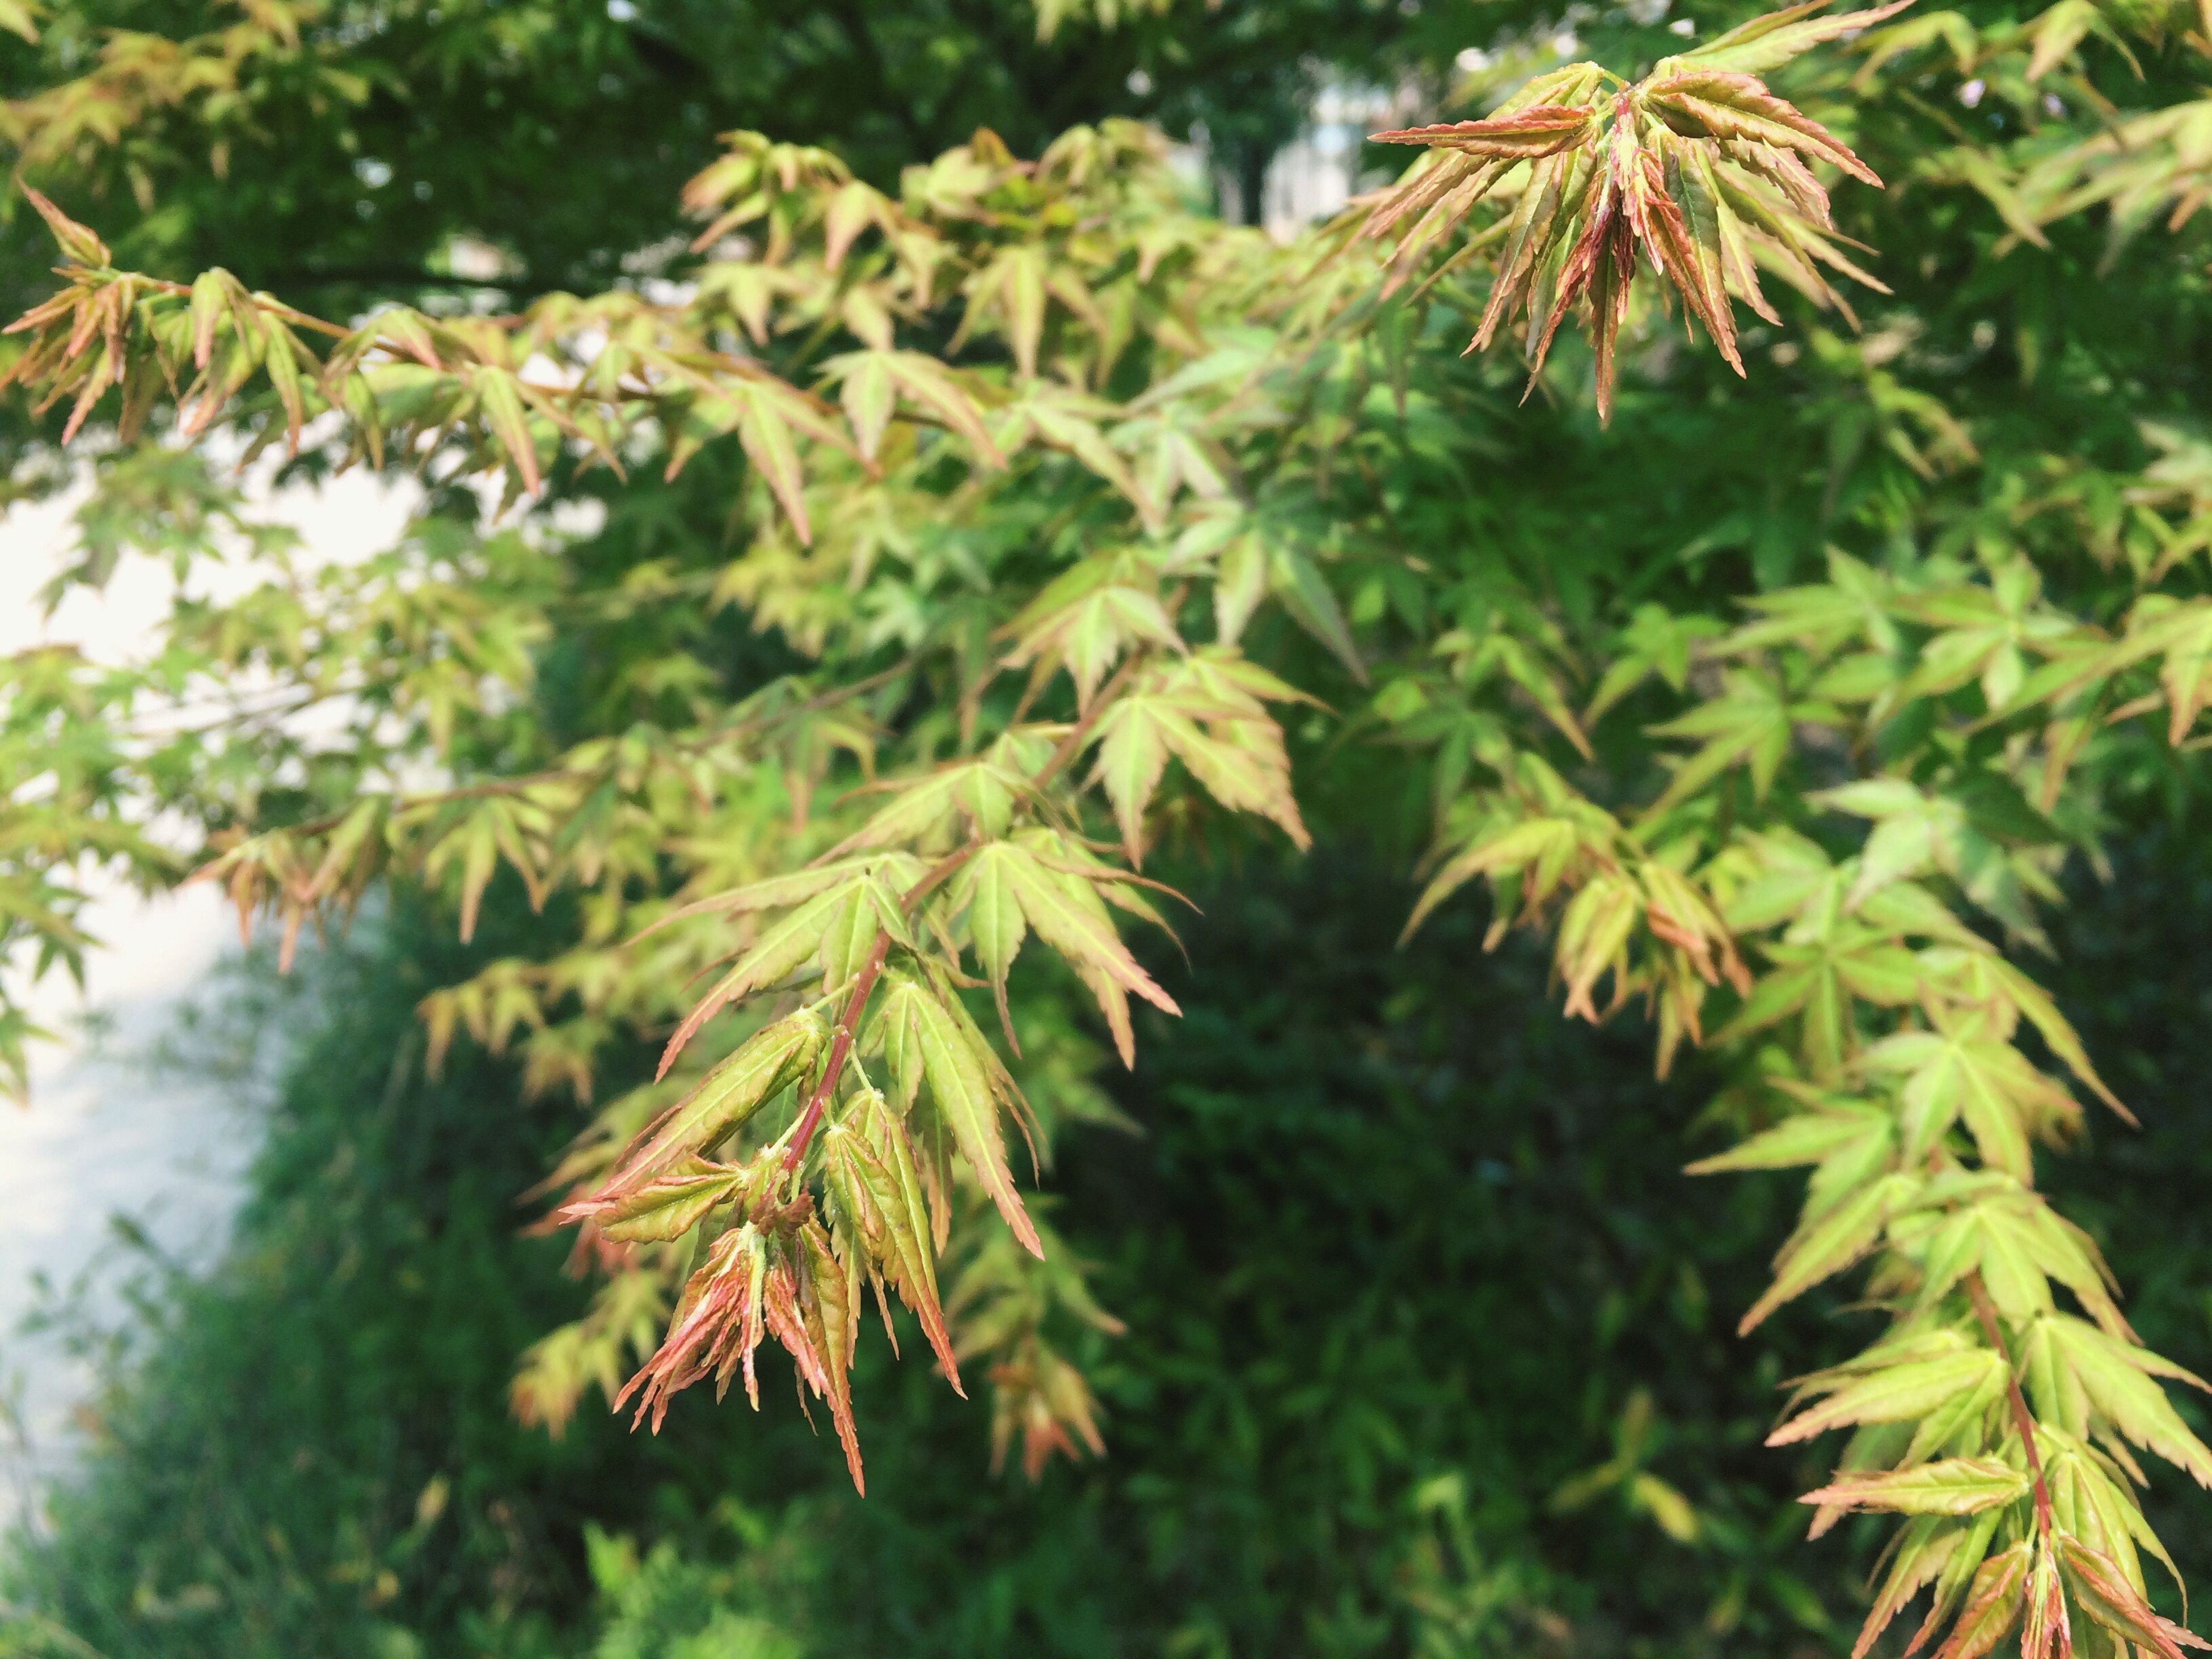 leaf, growth, tree, nature, beauty in nature, green color, plant, tranquility, close-up, focus on foreground, selective focus, leaves, branch, outdoors, day, sunlight, season, no people, growing, autumn